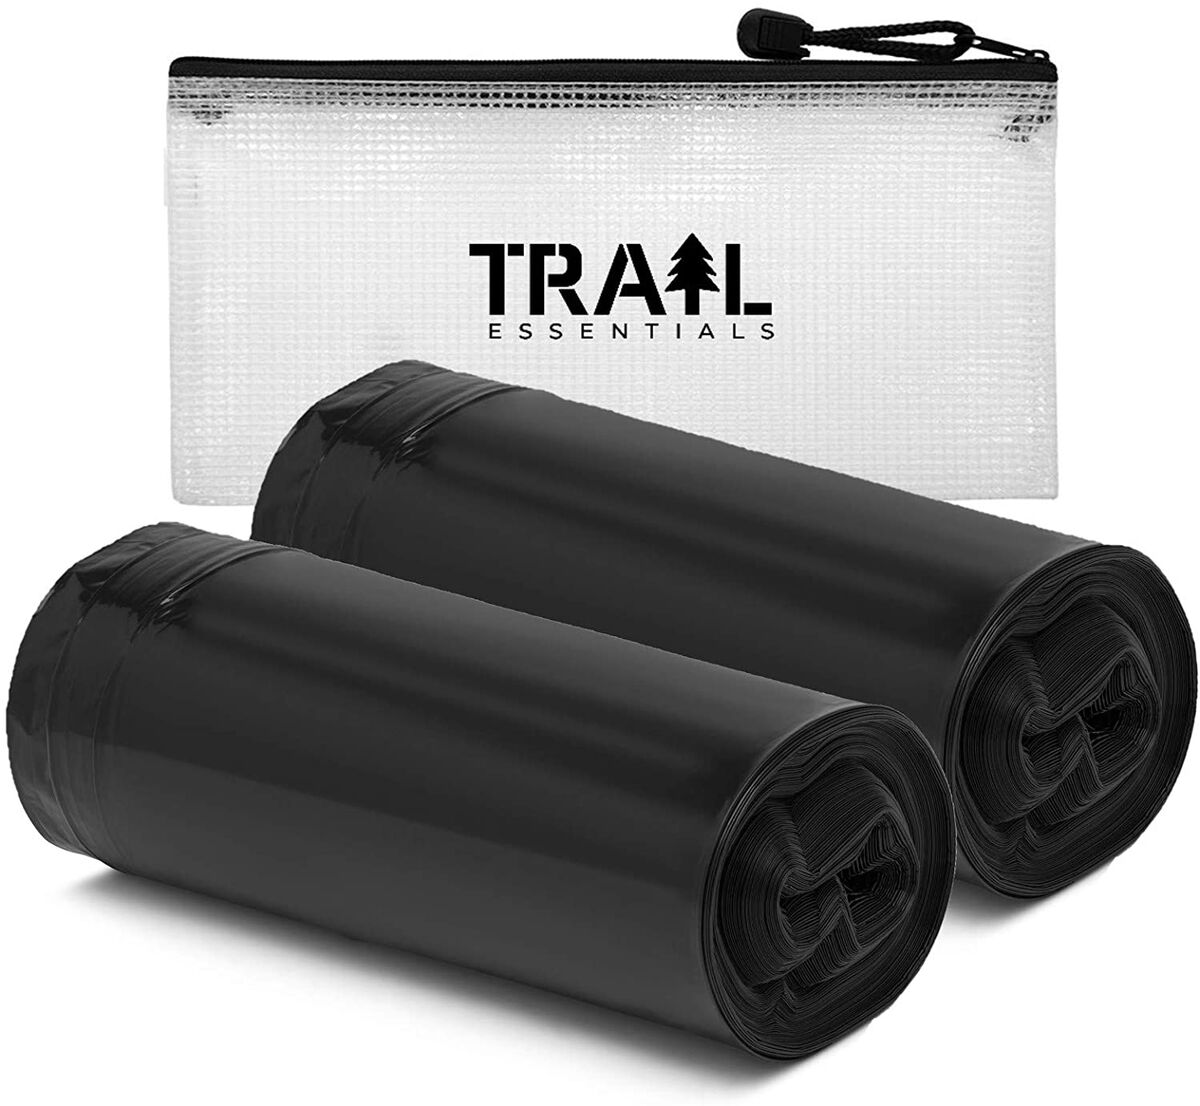 trail essentials liners